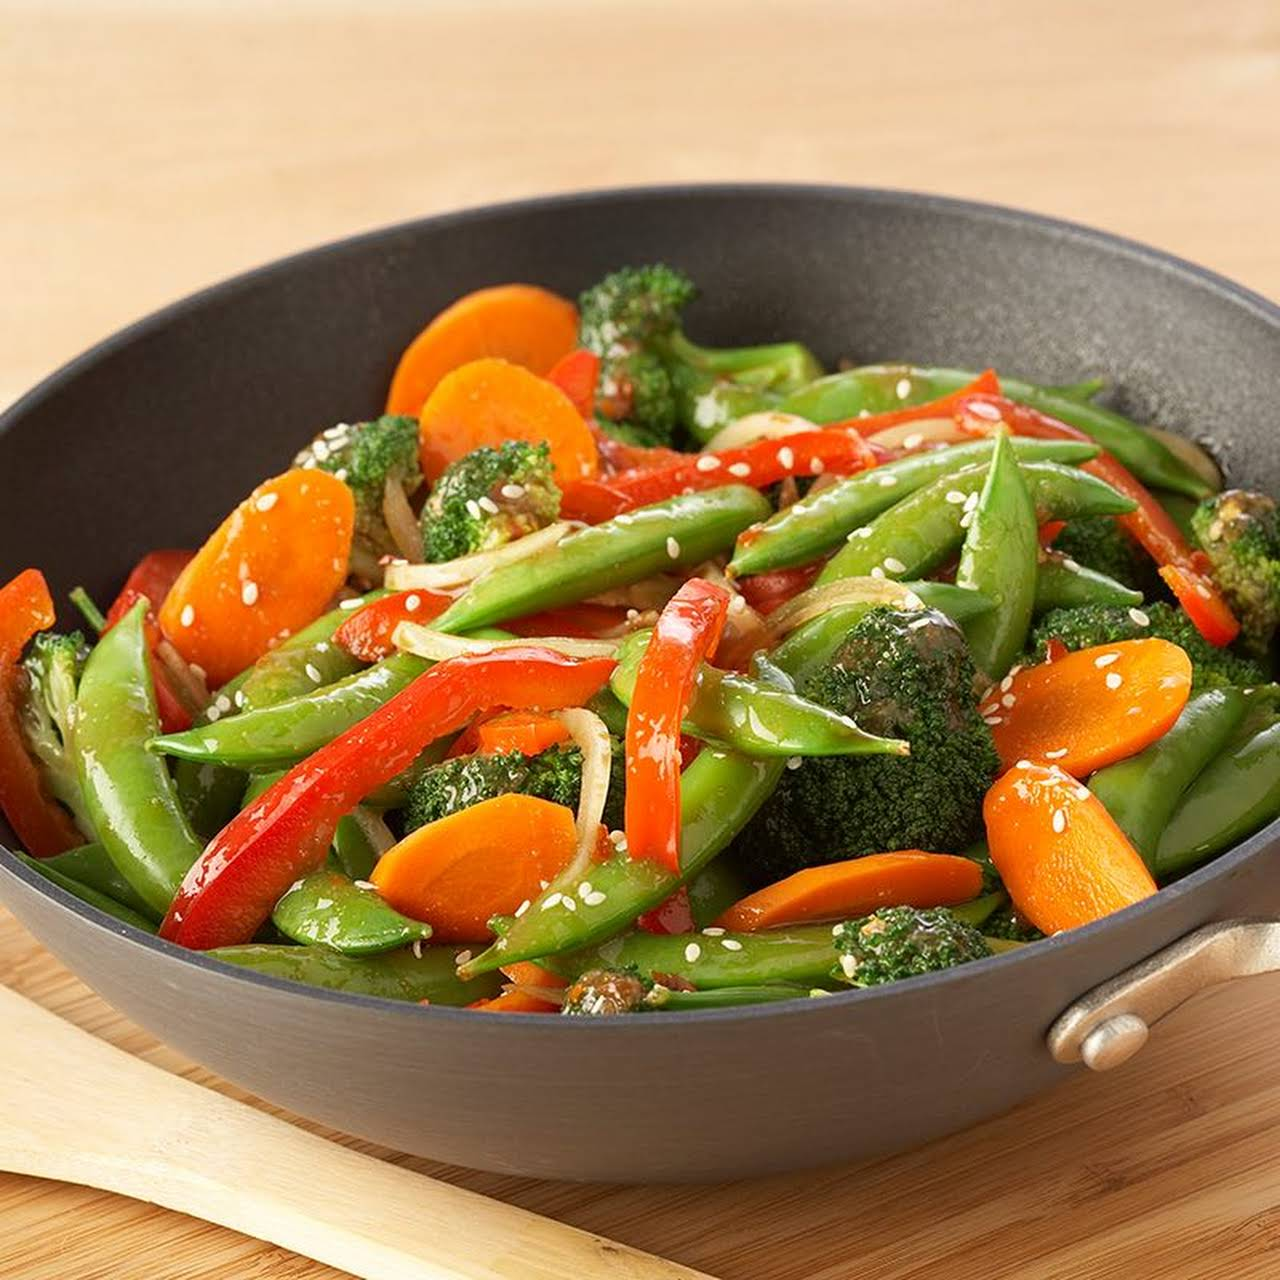 Stir Fry Vegetables Recipe Yummly